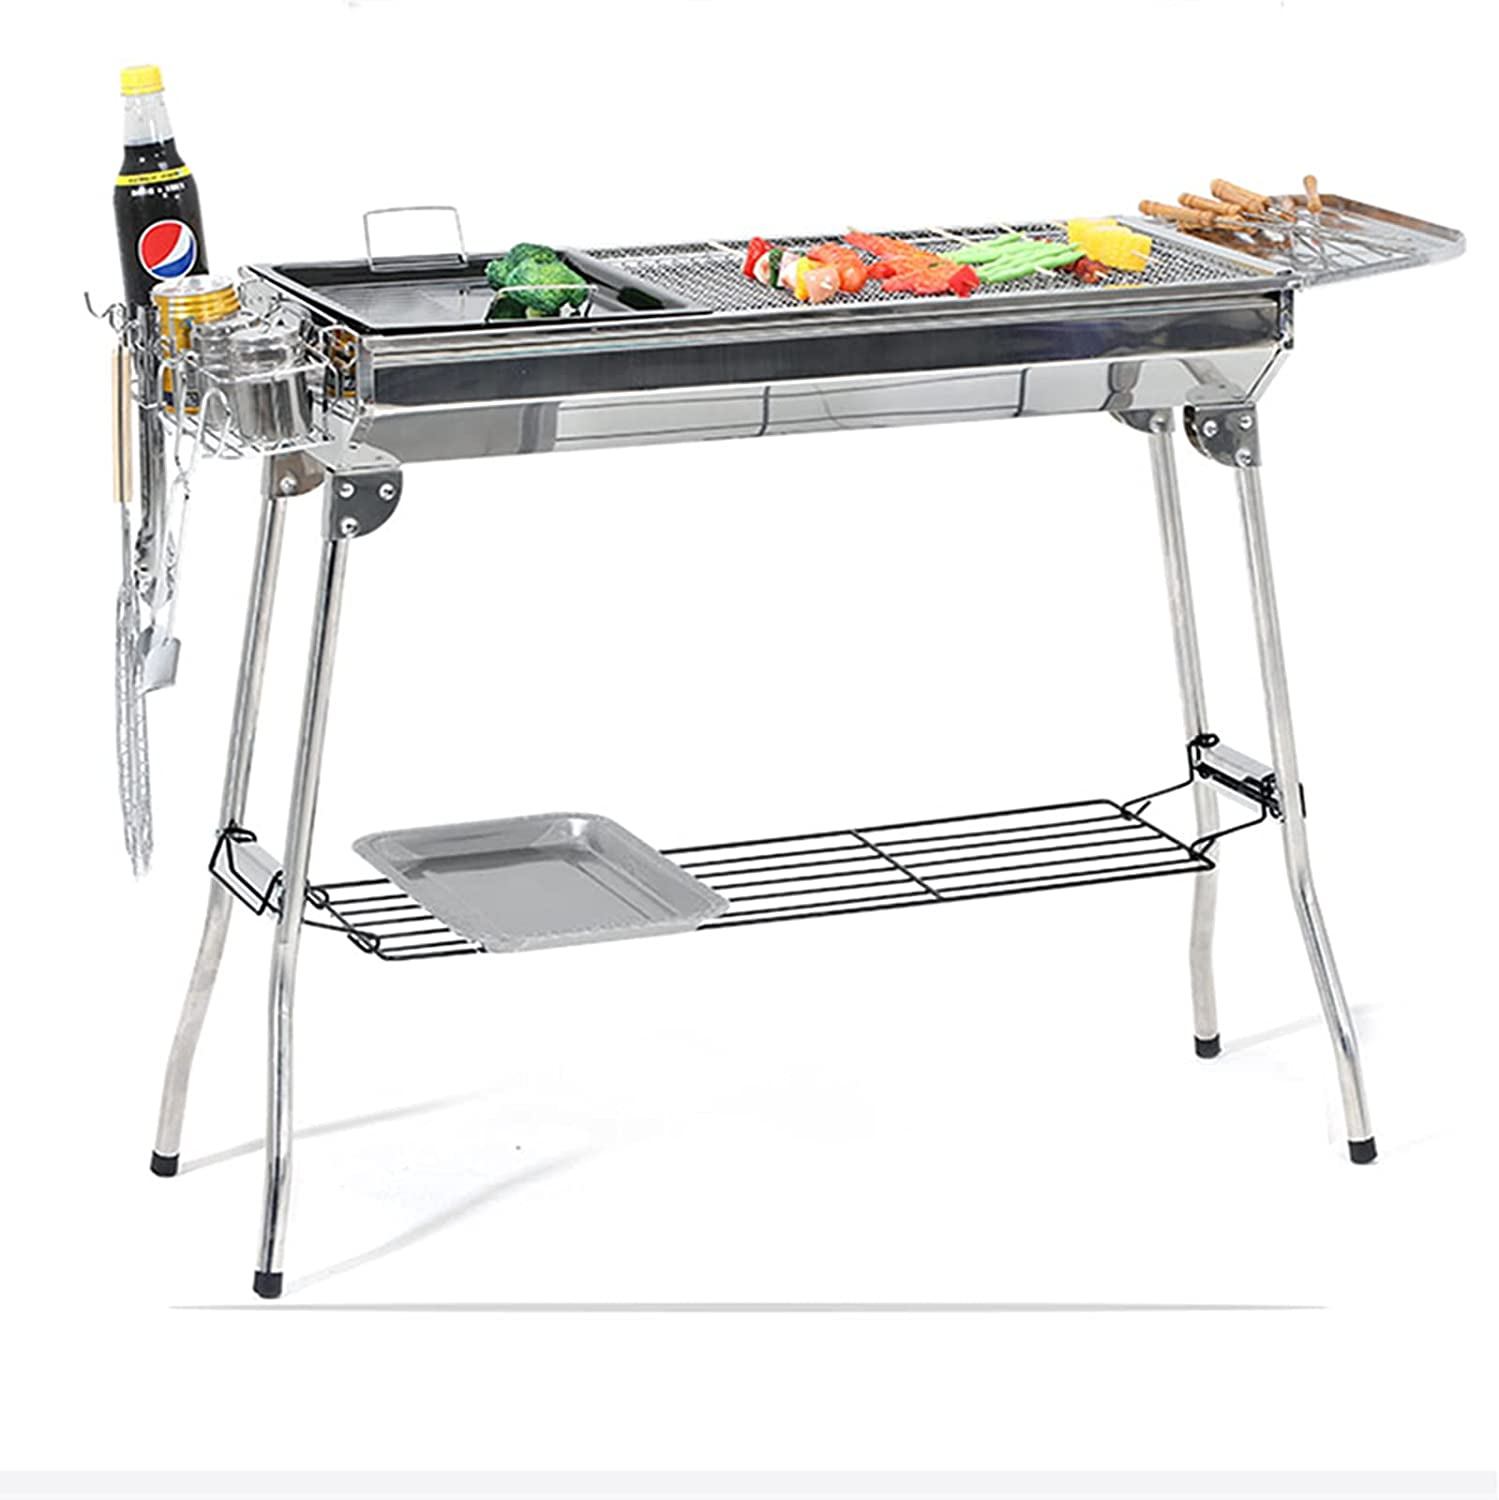 N B Popularity Portable Award-winning store Charcoal Grill and Foldable Lightweight Durable